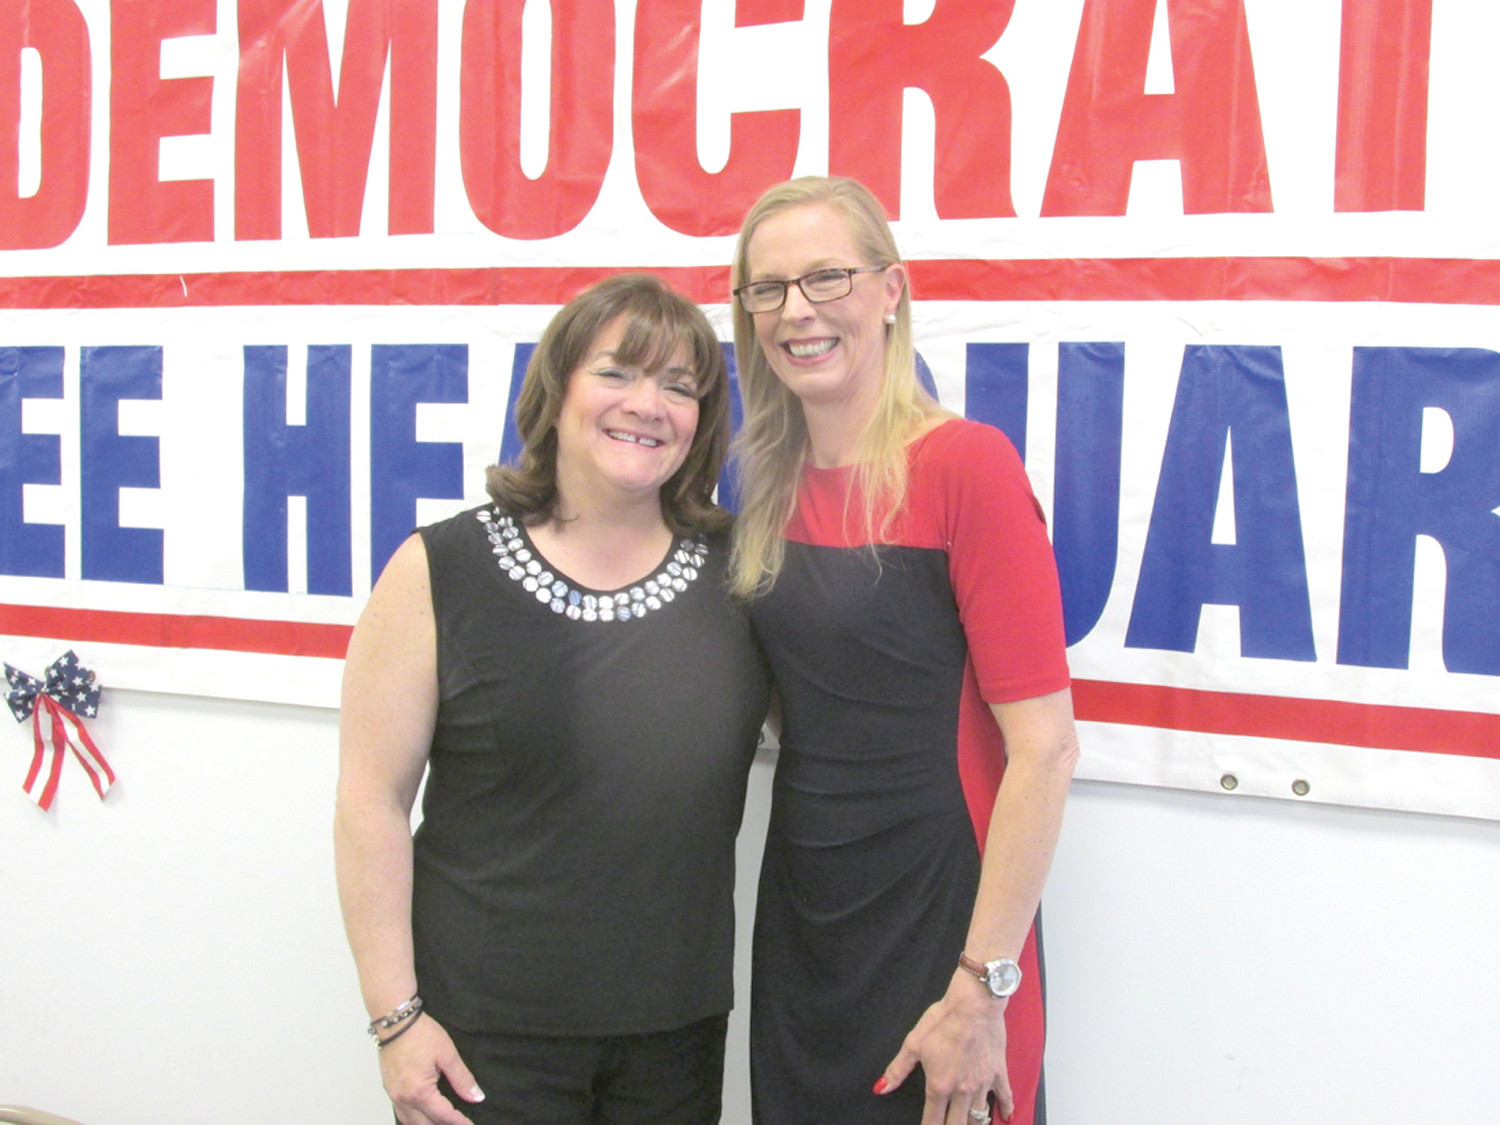 FORMER FIRST: Former Johnston School Committee member Susan Mansolillo has received the JDTC's endorsement for the District 5 seat while Dawn Aloisio, a paralegal ad law office manager, will be the Democratic challenger for the District 5 seat currently held by Gena Bianco.